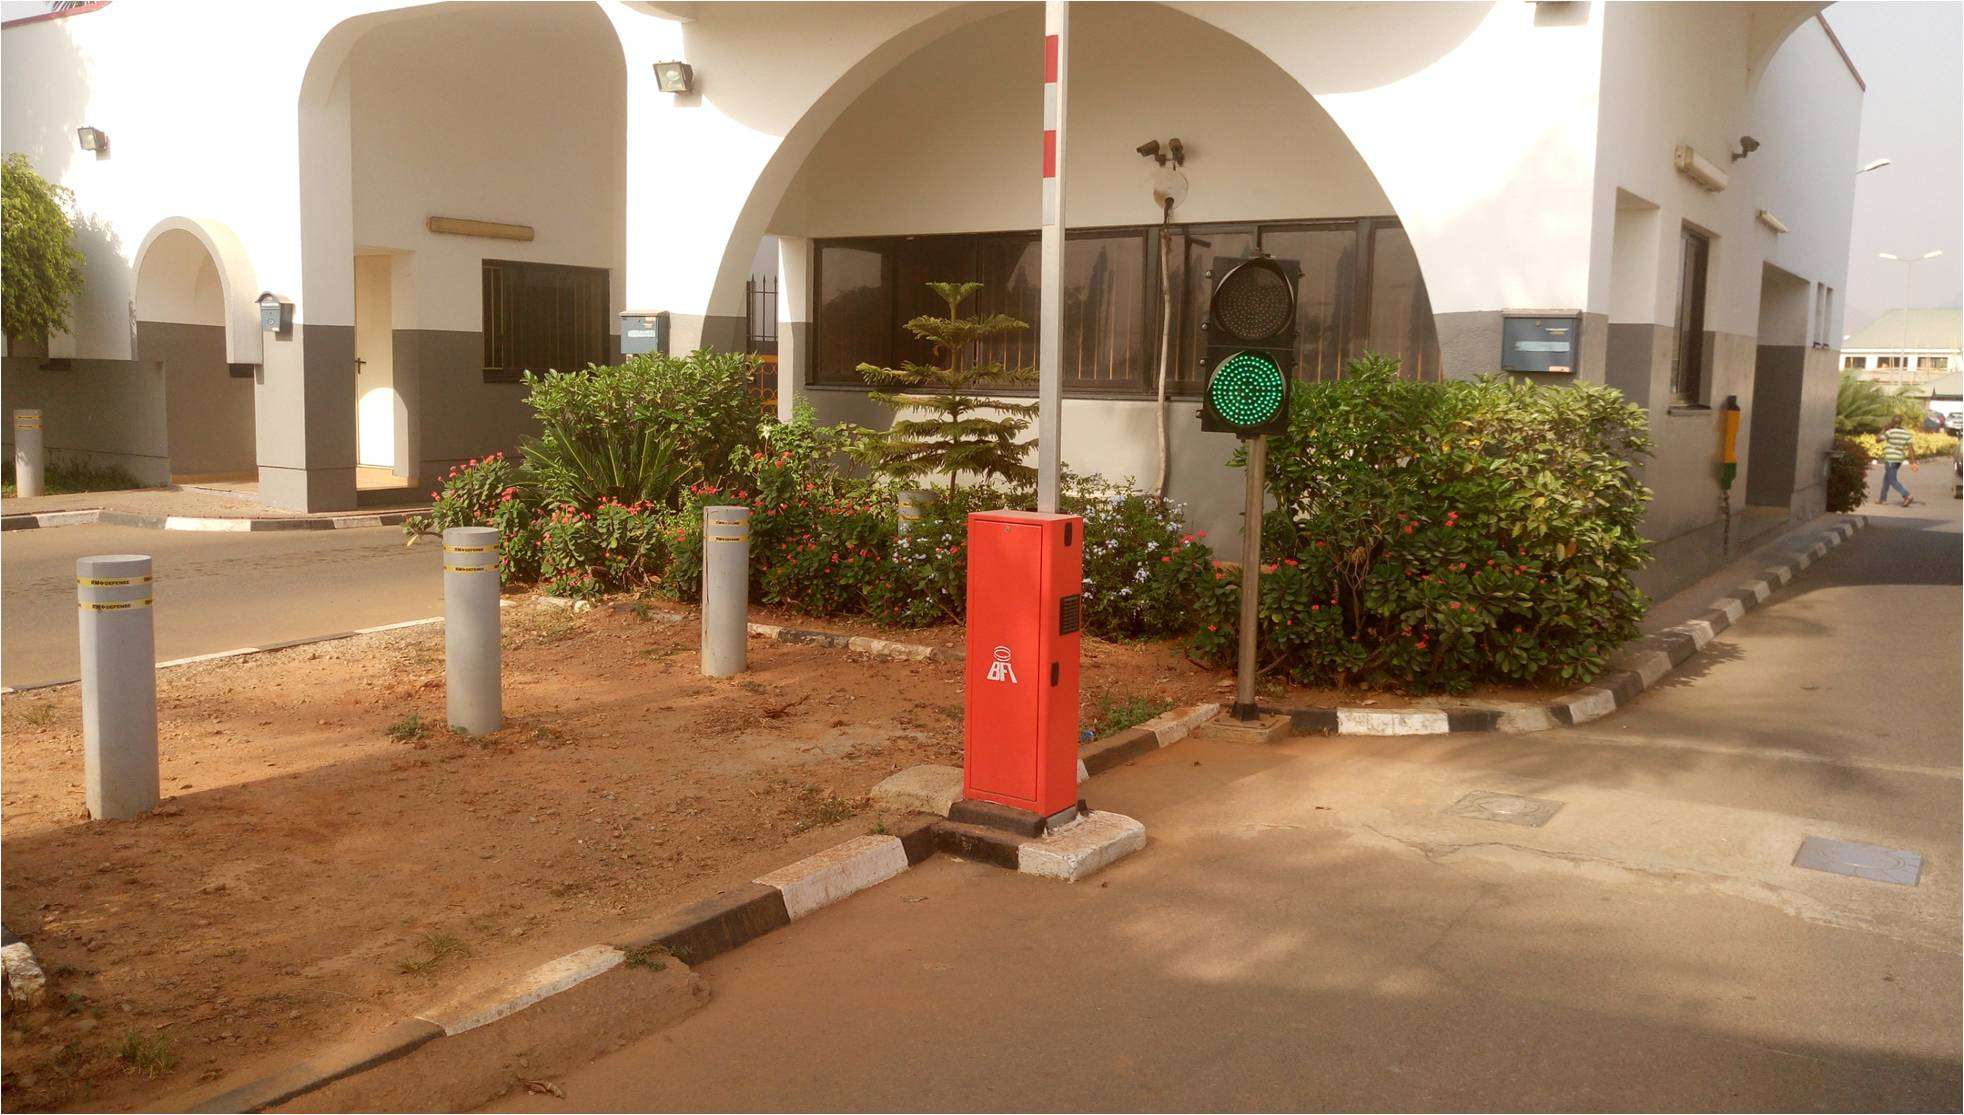 Automatic Stainless Steel Bollards/Under Vehicle Scanning System